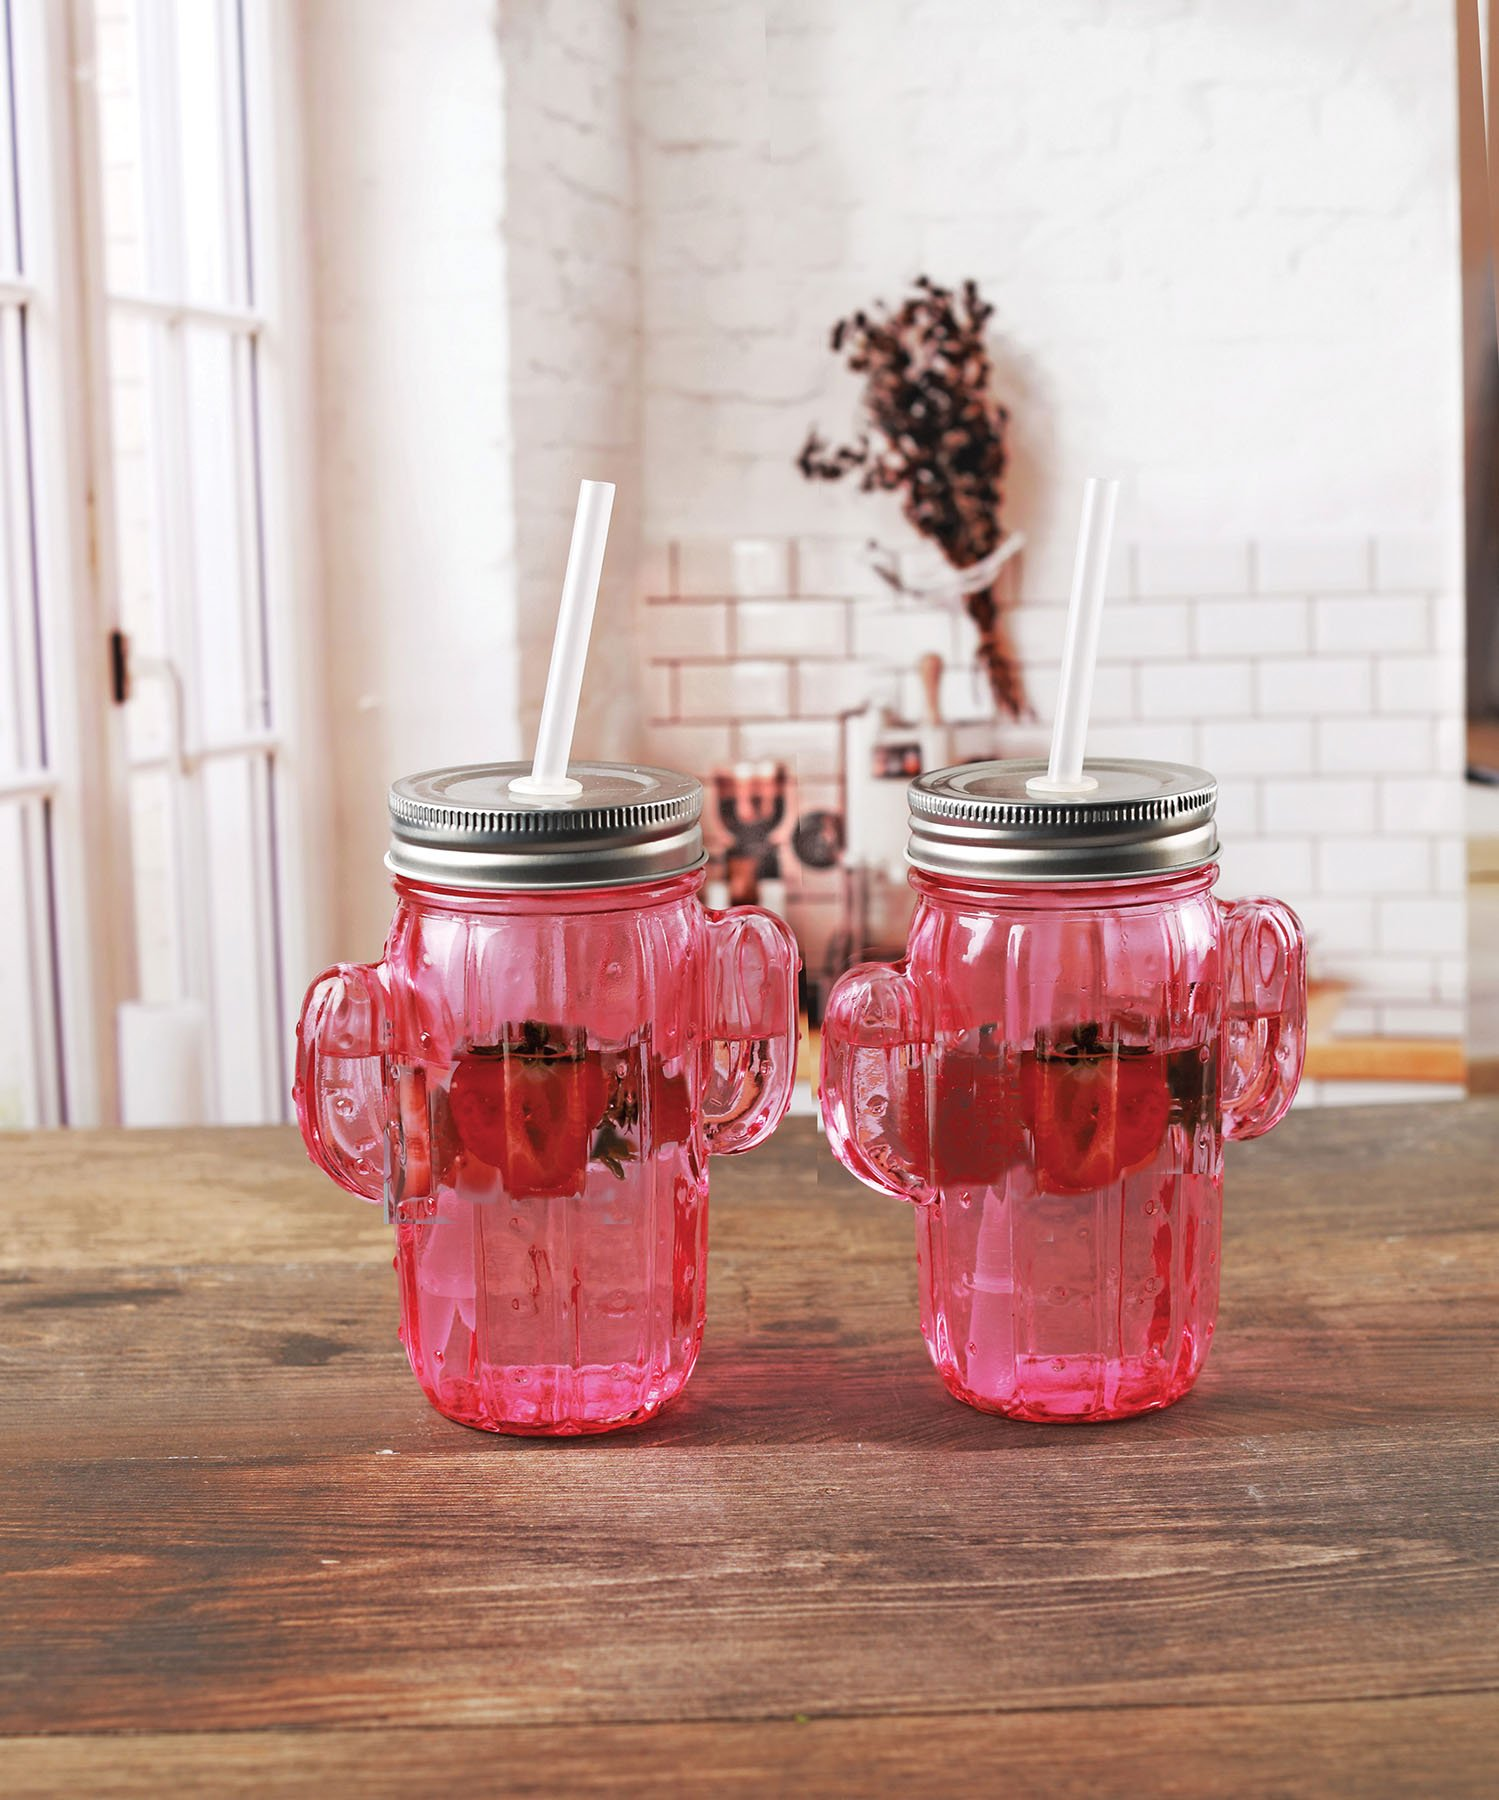 Circleware 06367 Huge Set of 12 Mason Jars Drinking Glasses with Metal Lids and Hard Straws Glassware for Water Beer and Kitchen & Home Decor Bar Dining Beverage Gifts, 15.5 oz, Pink Cactus-12pc by Circleware (Image #7)